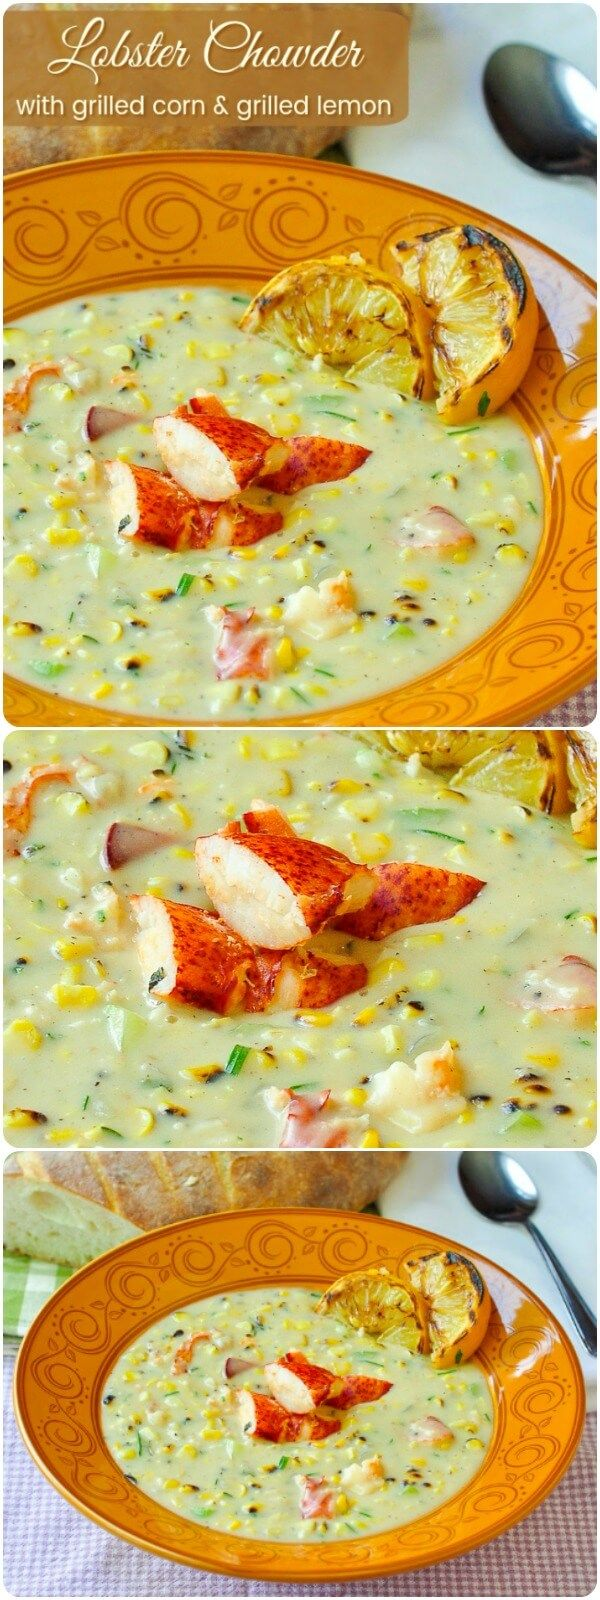 Lobster Chowder with Grilled Corn & Grilled Lemon - a delicious New England style chowder featuring succulent lobster & smoky sweet grilled corn then finished with a squeeze of grilled lemon.